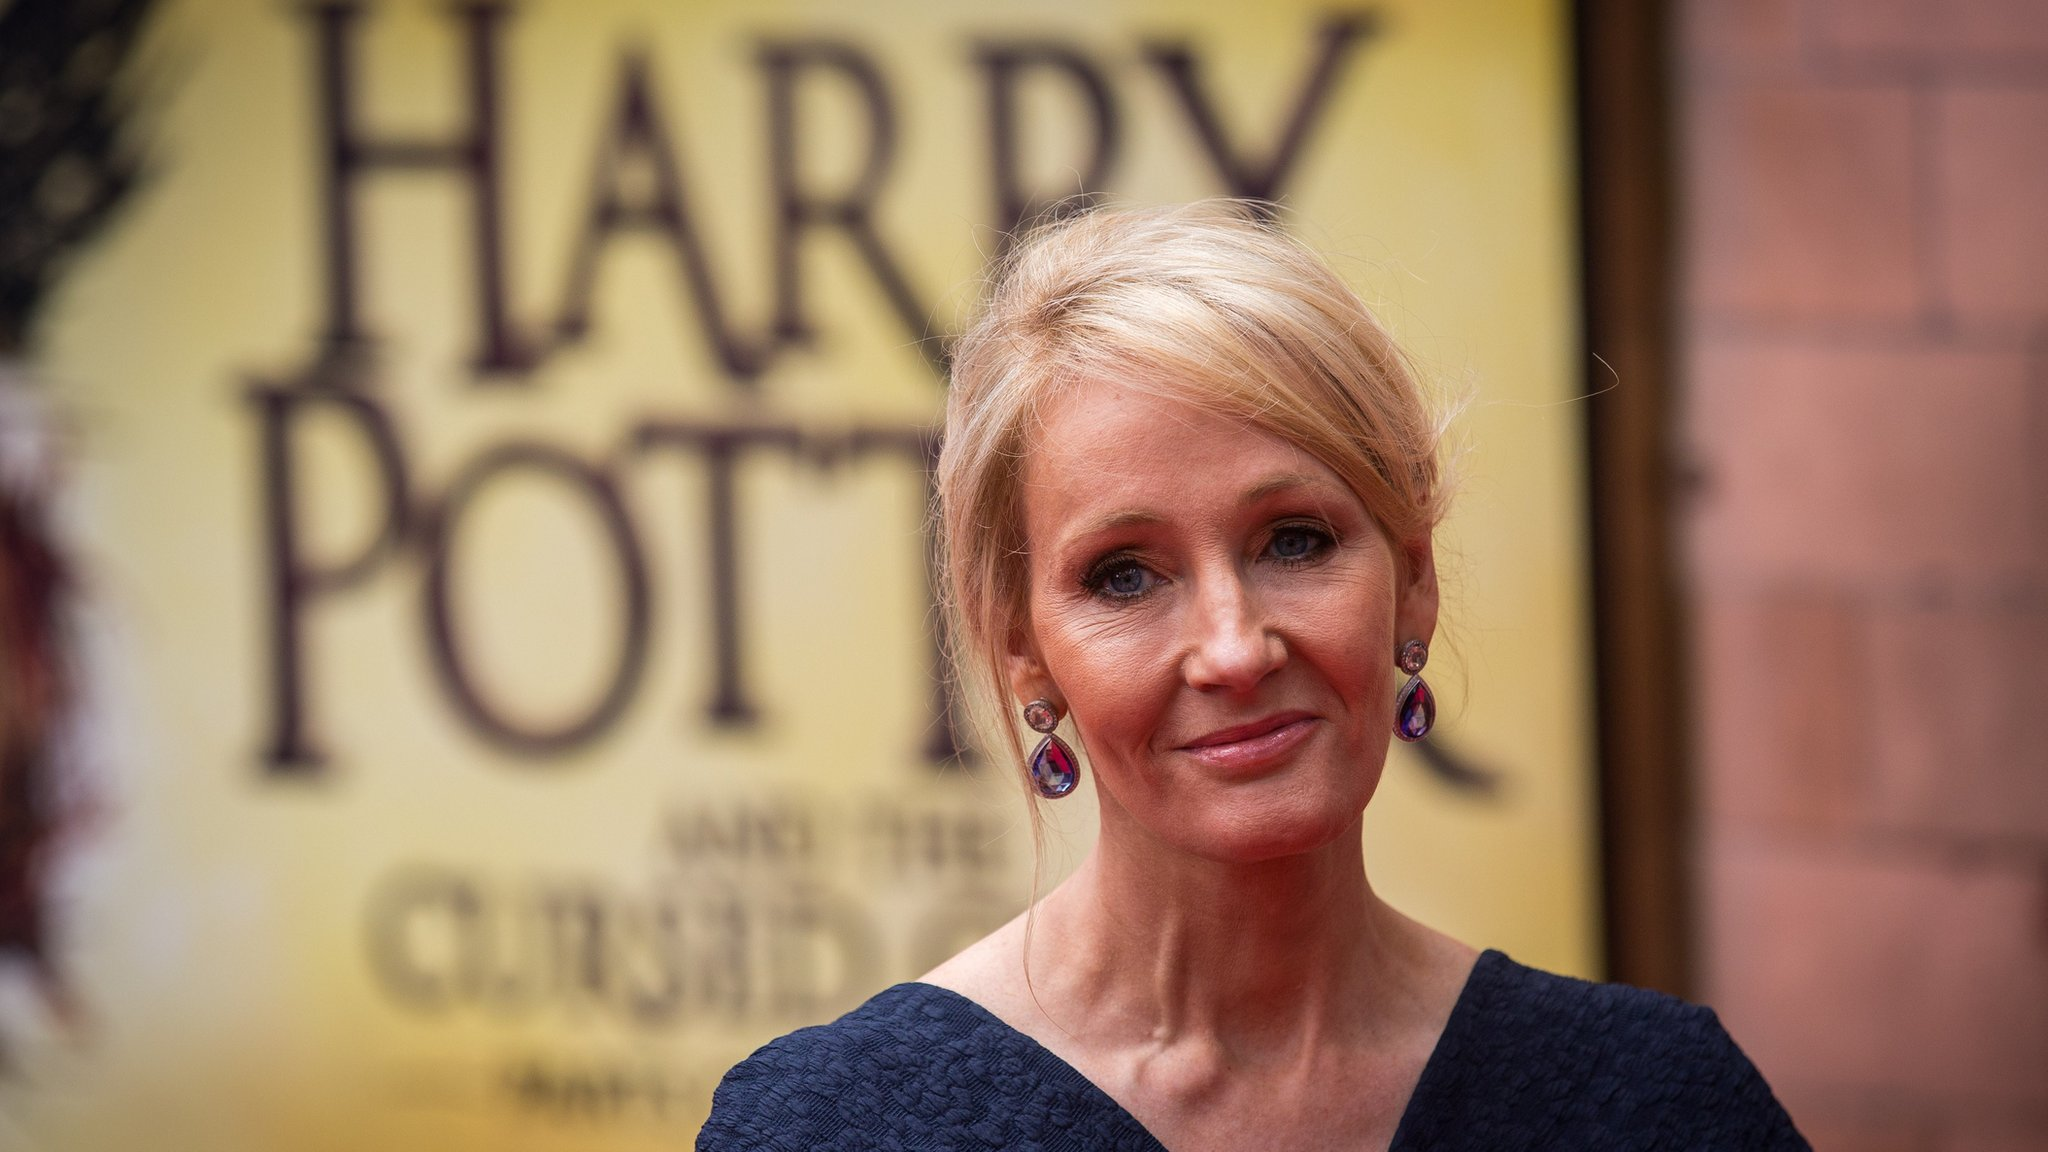 JK Rowling praises Harry Potter fans for not sharing Cursed Child spoilers